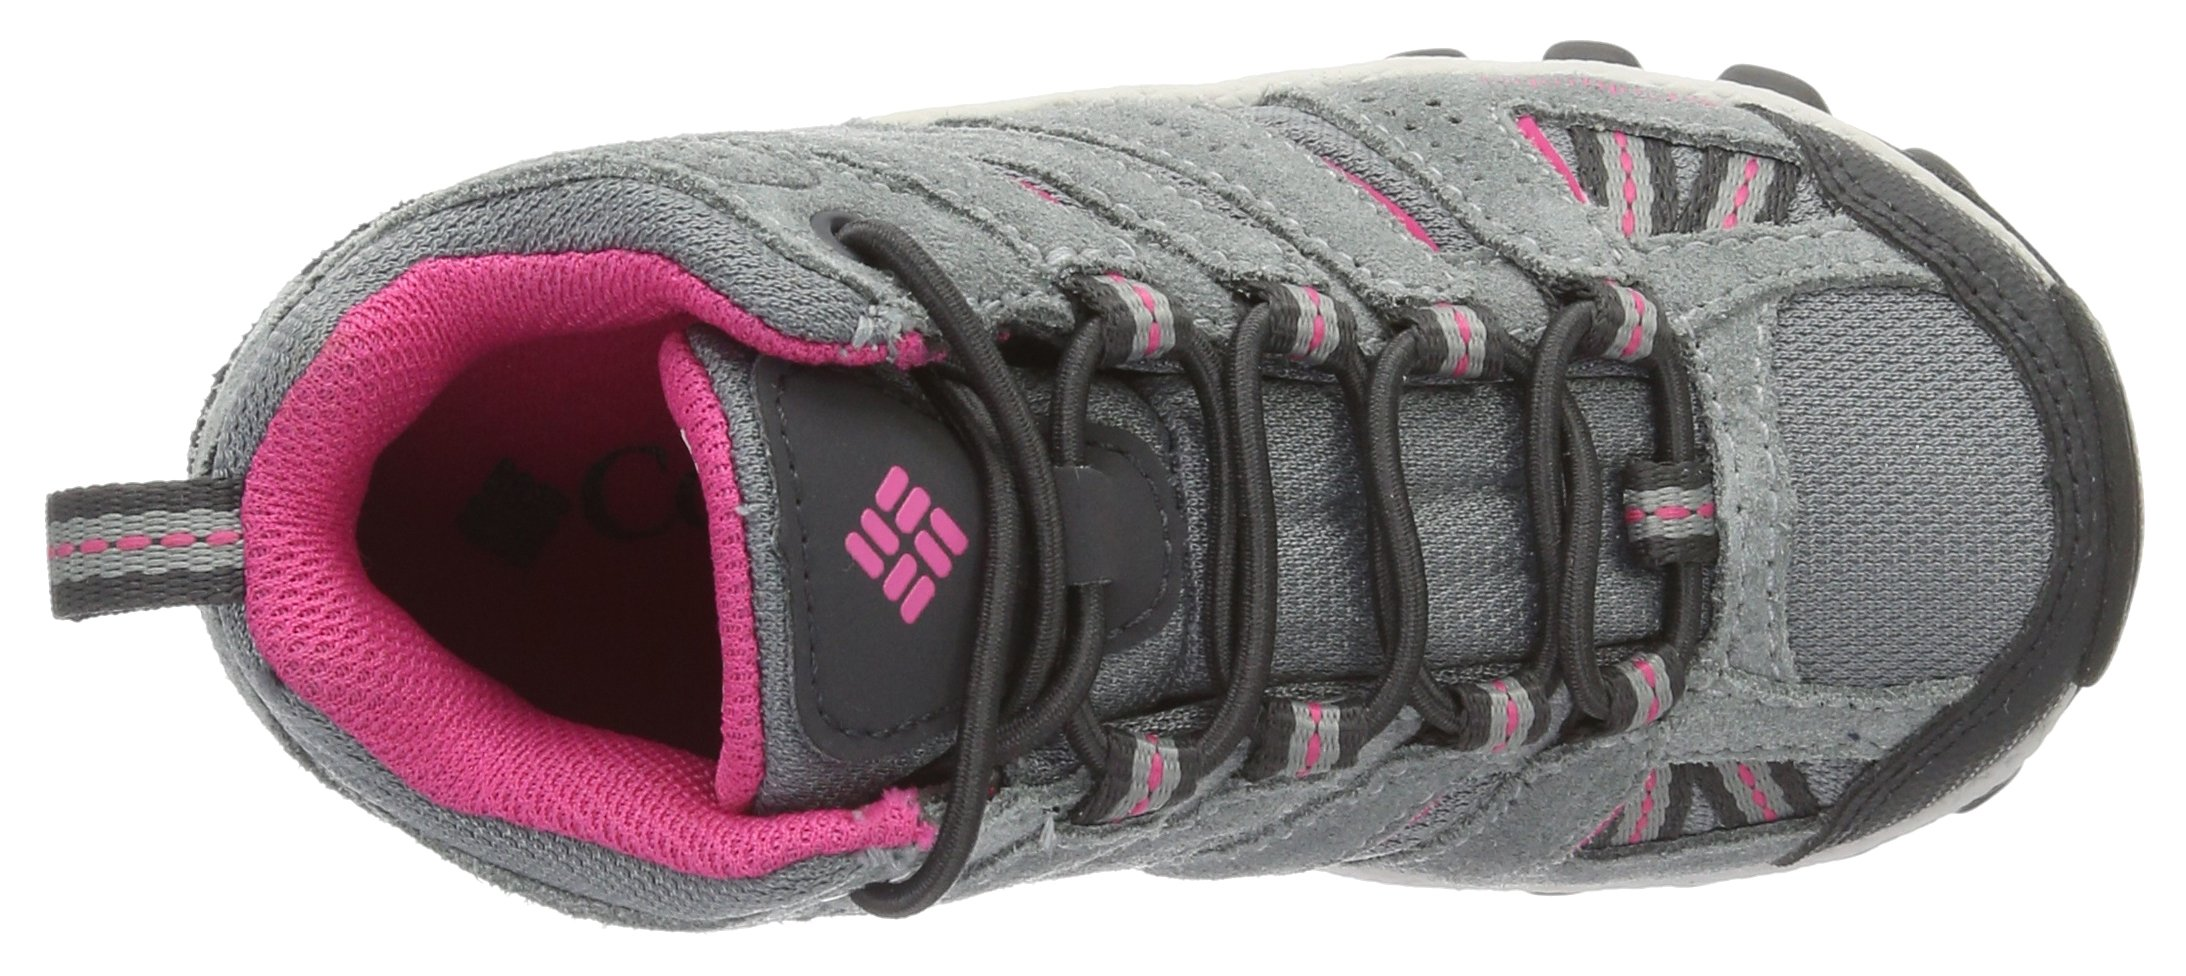 Columbia Childrens North Plains MID Waterproof Hiking Boot Grey Ash/Ultra Pink 11 M US Little Kid by Columbia (Image #7)